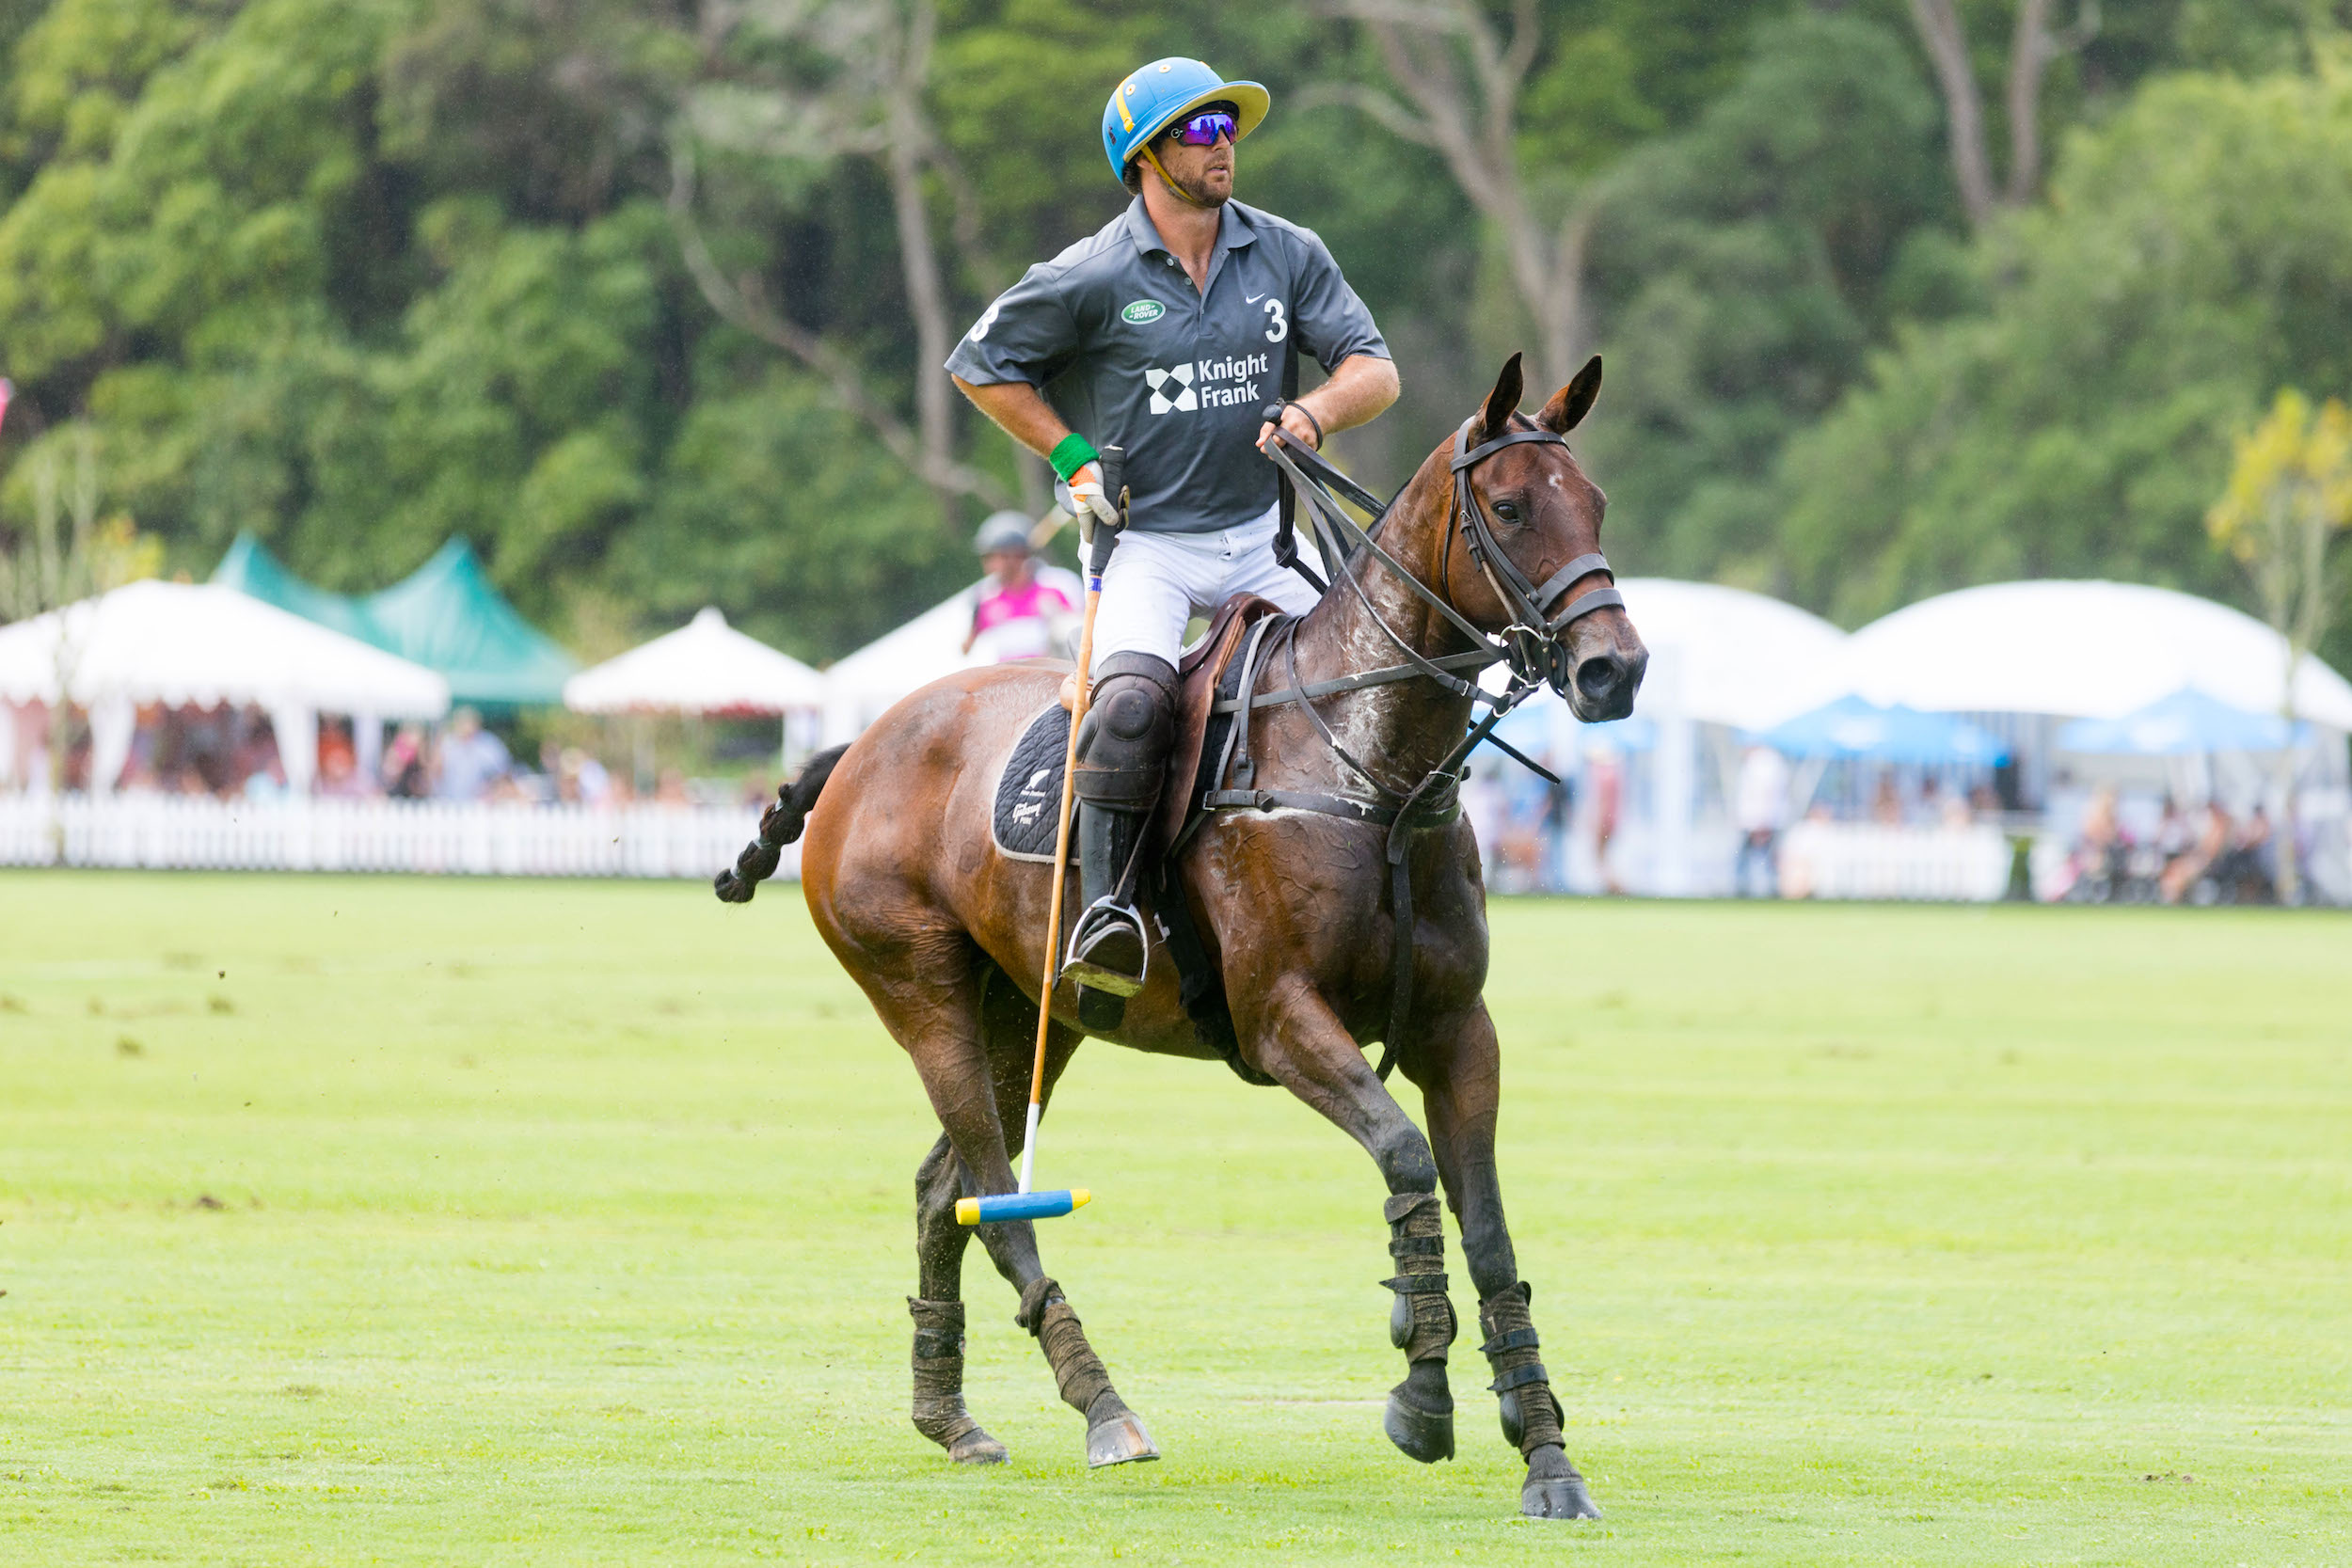 Polo player riding a brown horse, holding a polo stick